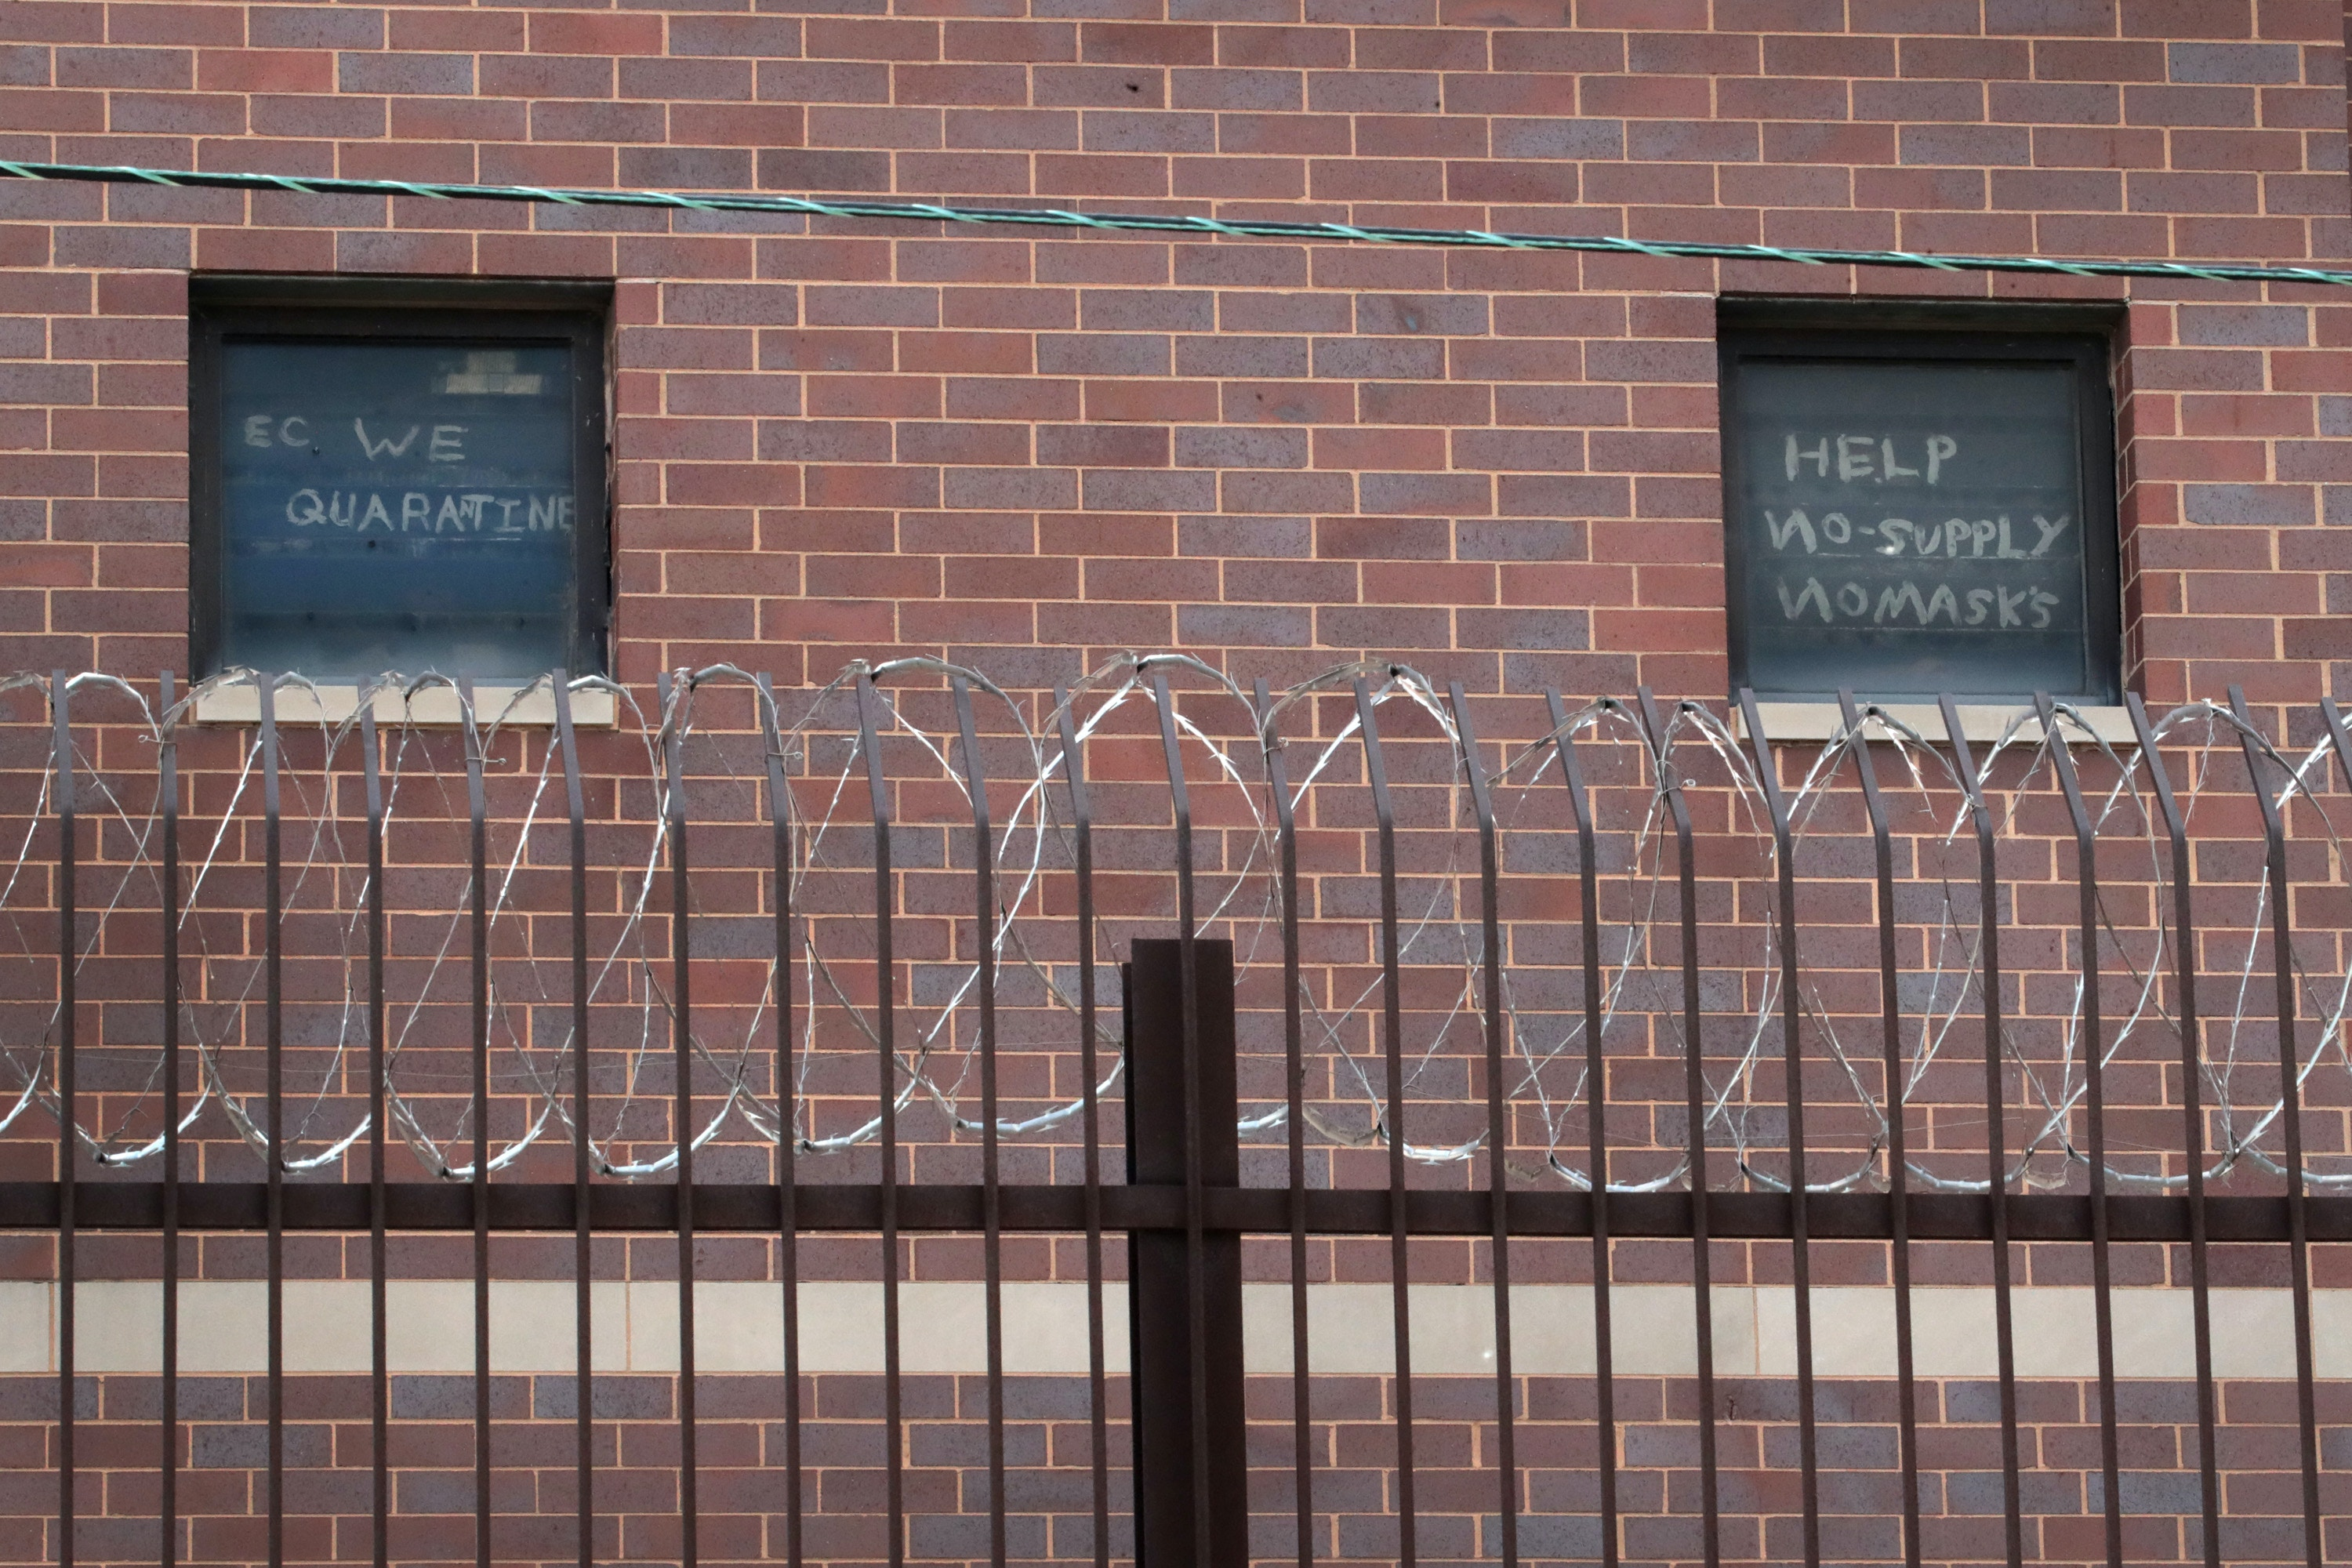 CHICAGO, ILLINOIS - APRIL 09: Signs pleading for help hang in windows at the Cook County jail complex on April 09, 2020 in Chicago, Illinois. With nearly 400 cases of COVID-19 having been diagnosed among the inmates and employees, the jail is nation's largest-known source of coronavirus infections. (Photo by Scott Olson/Getty Images)